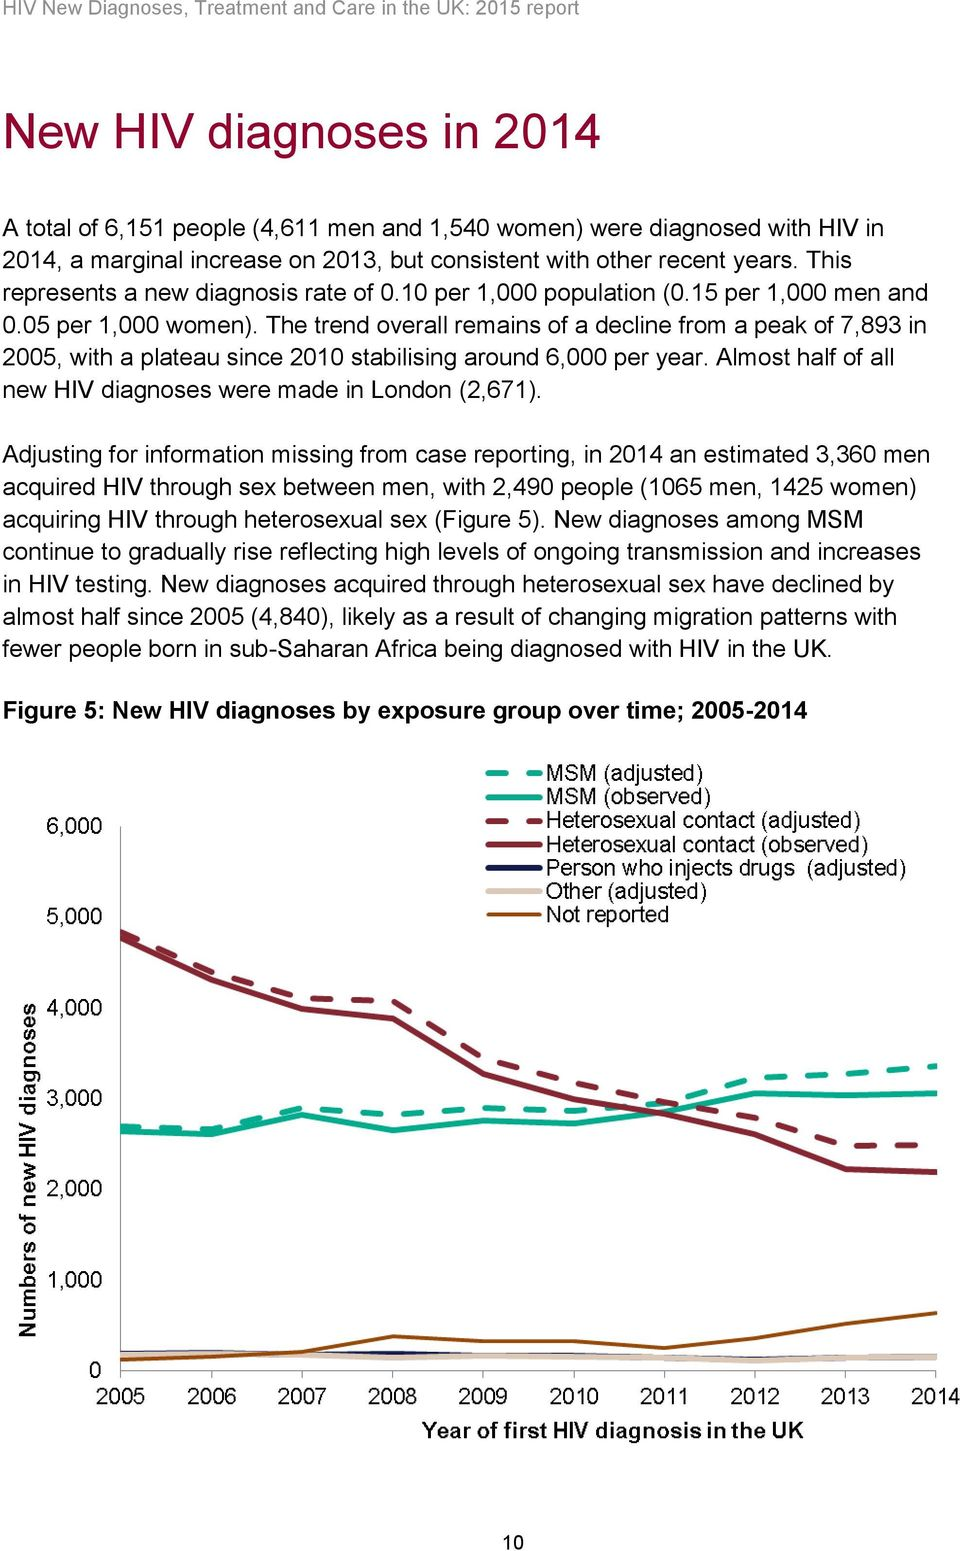 The trend overall remains of a decline from a peak of 7,893 in 2005, with a plateau since 2010 stabilising around 6,000 per year. Almost half of all new HIV diagnoses were made in London (2,671).